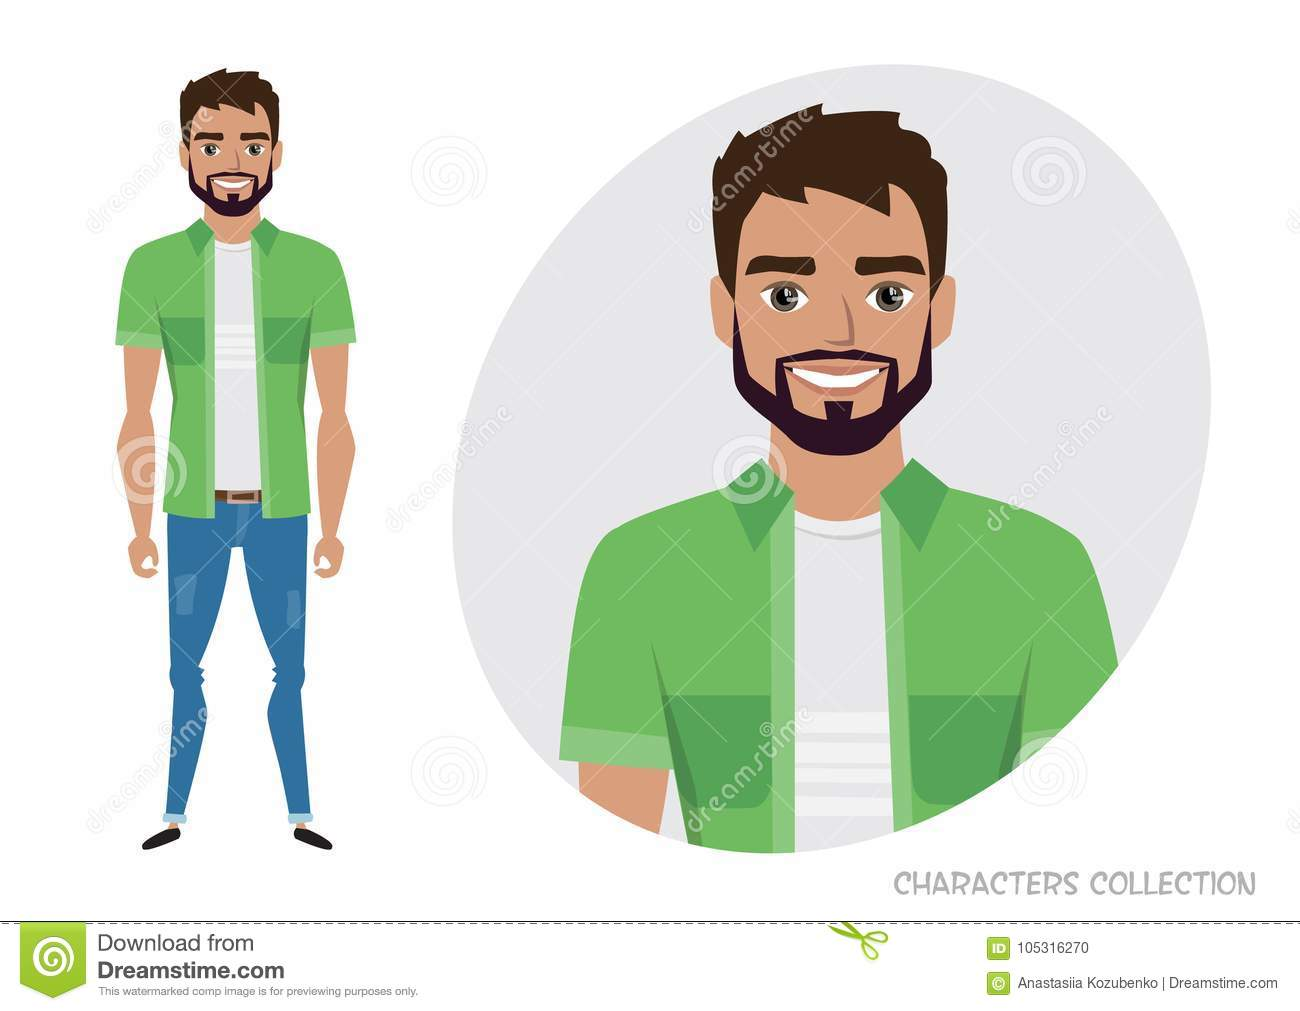 Men with beard in casual cloth